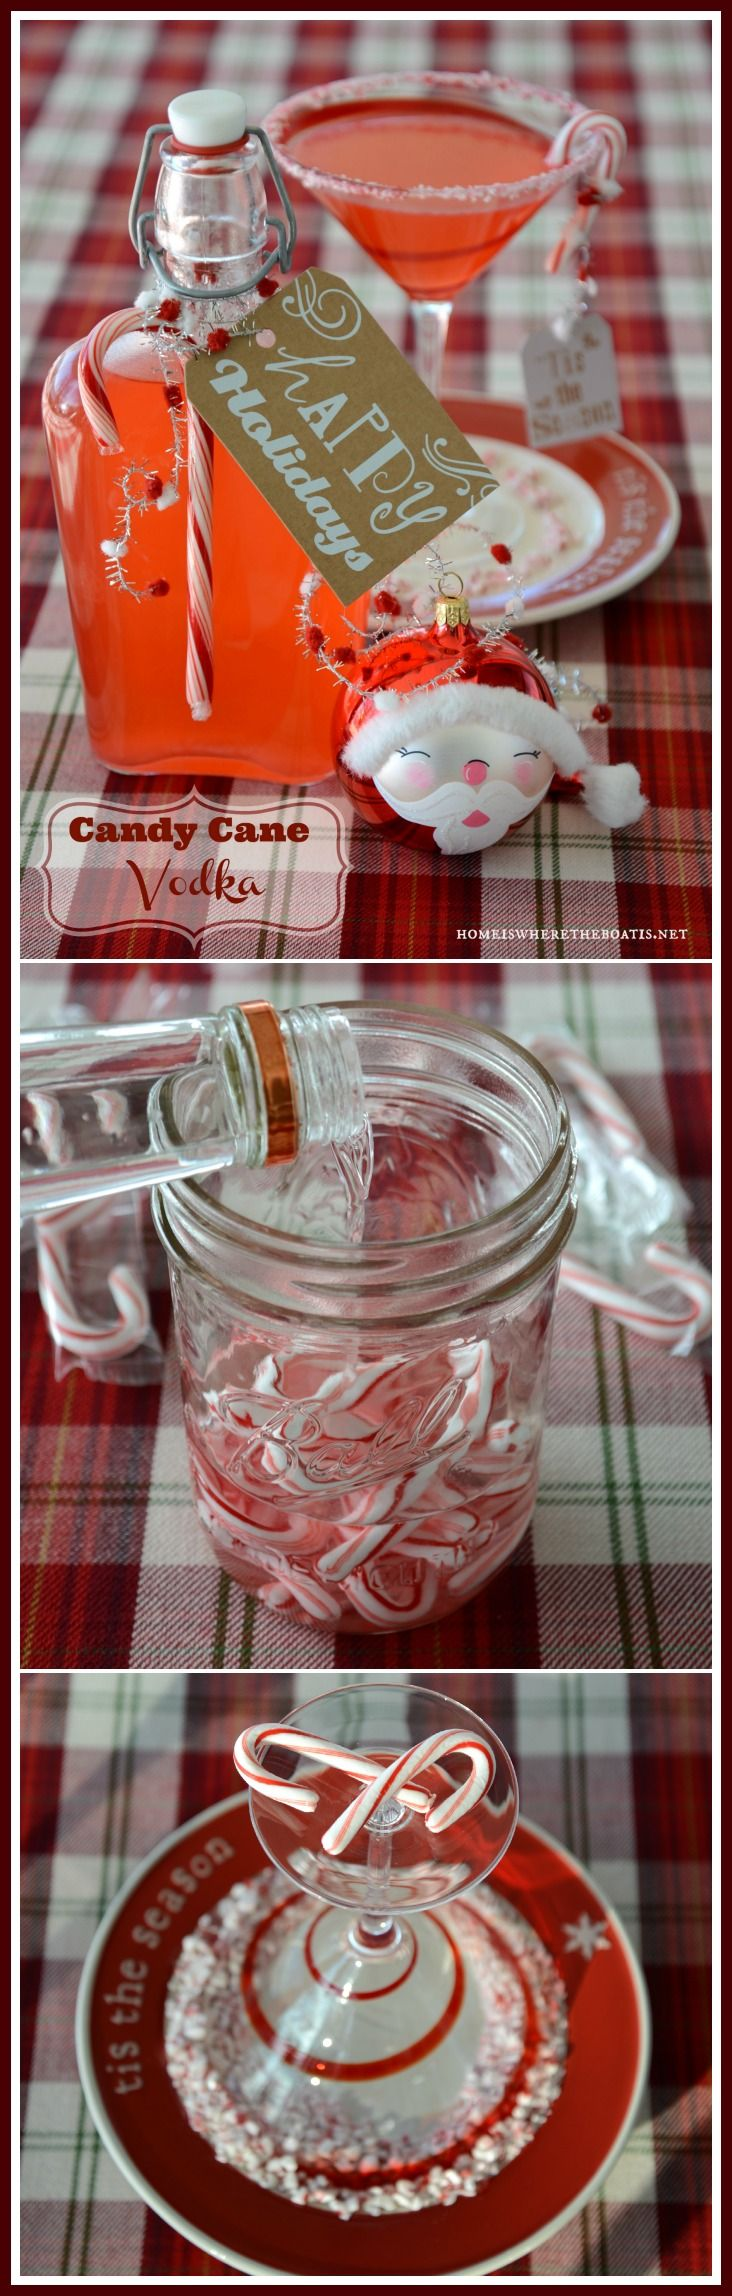 Making Spirits Bright: Candy Cane-infused Vodka, ready to sip or gift in 3 hours!